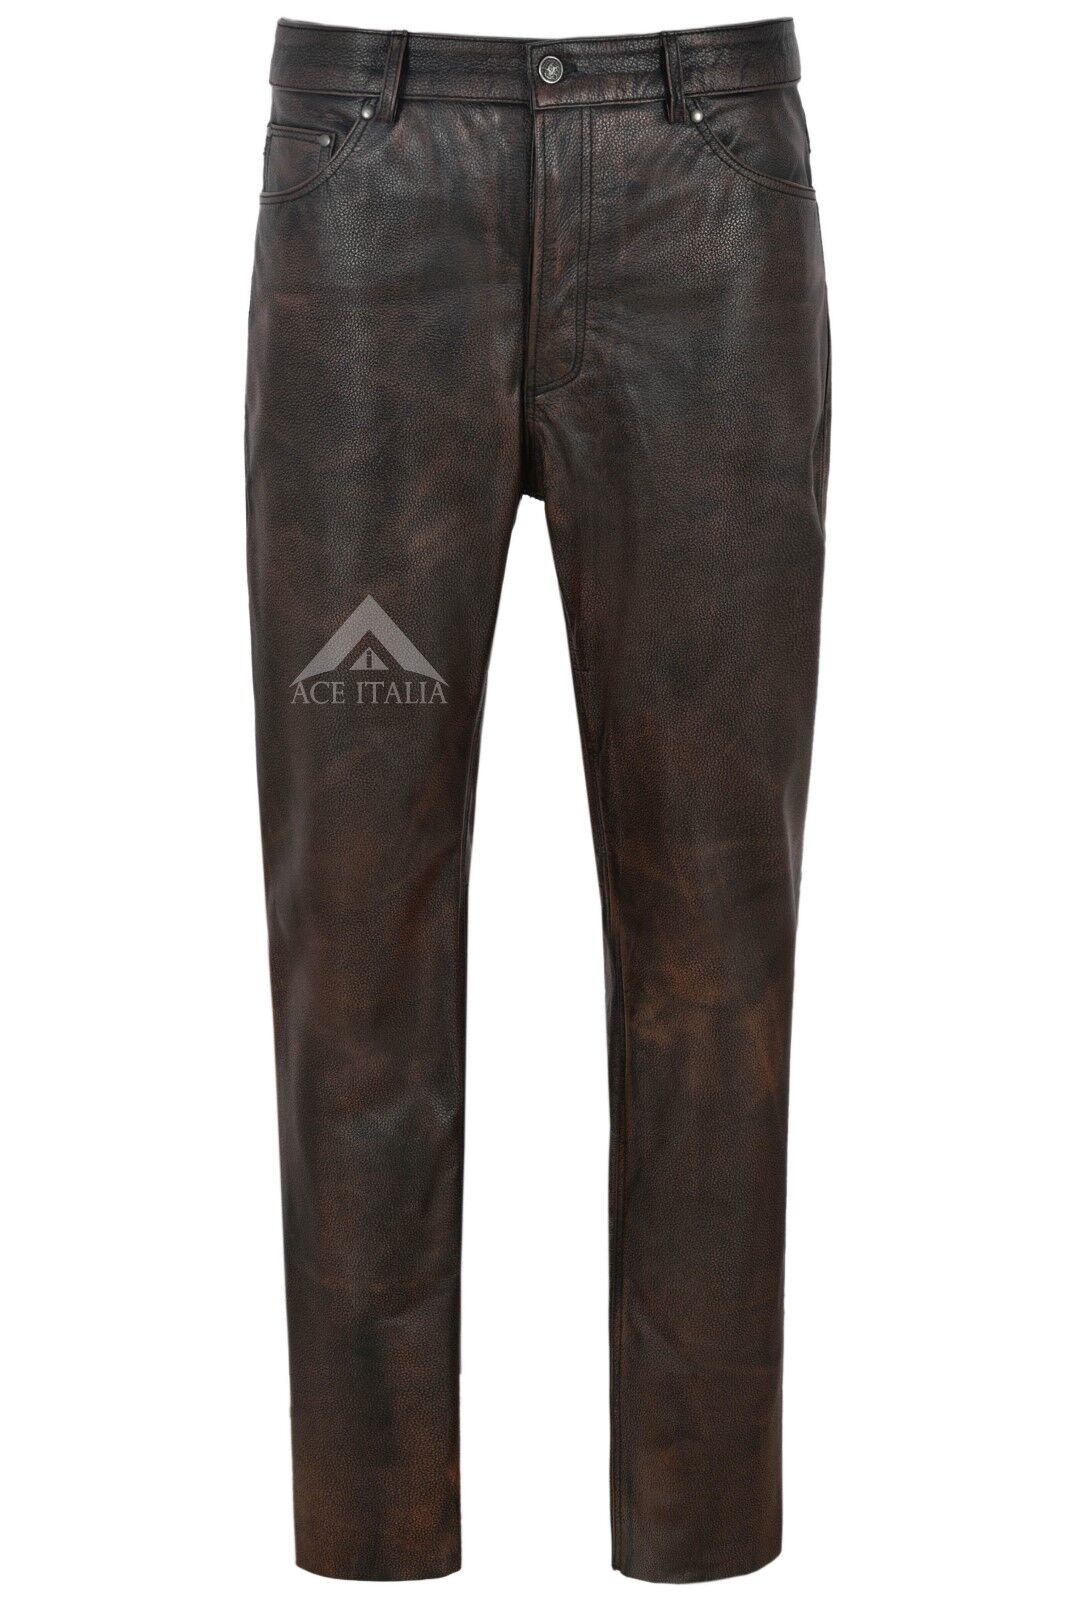 Men's Leather Pants Biker Trouser schwarz Rub Off Jeans Style Cowhide Leather 501